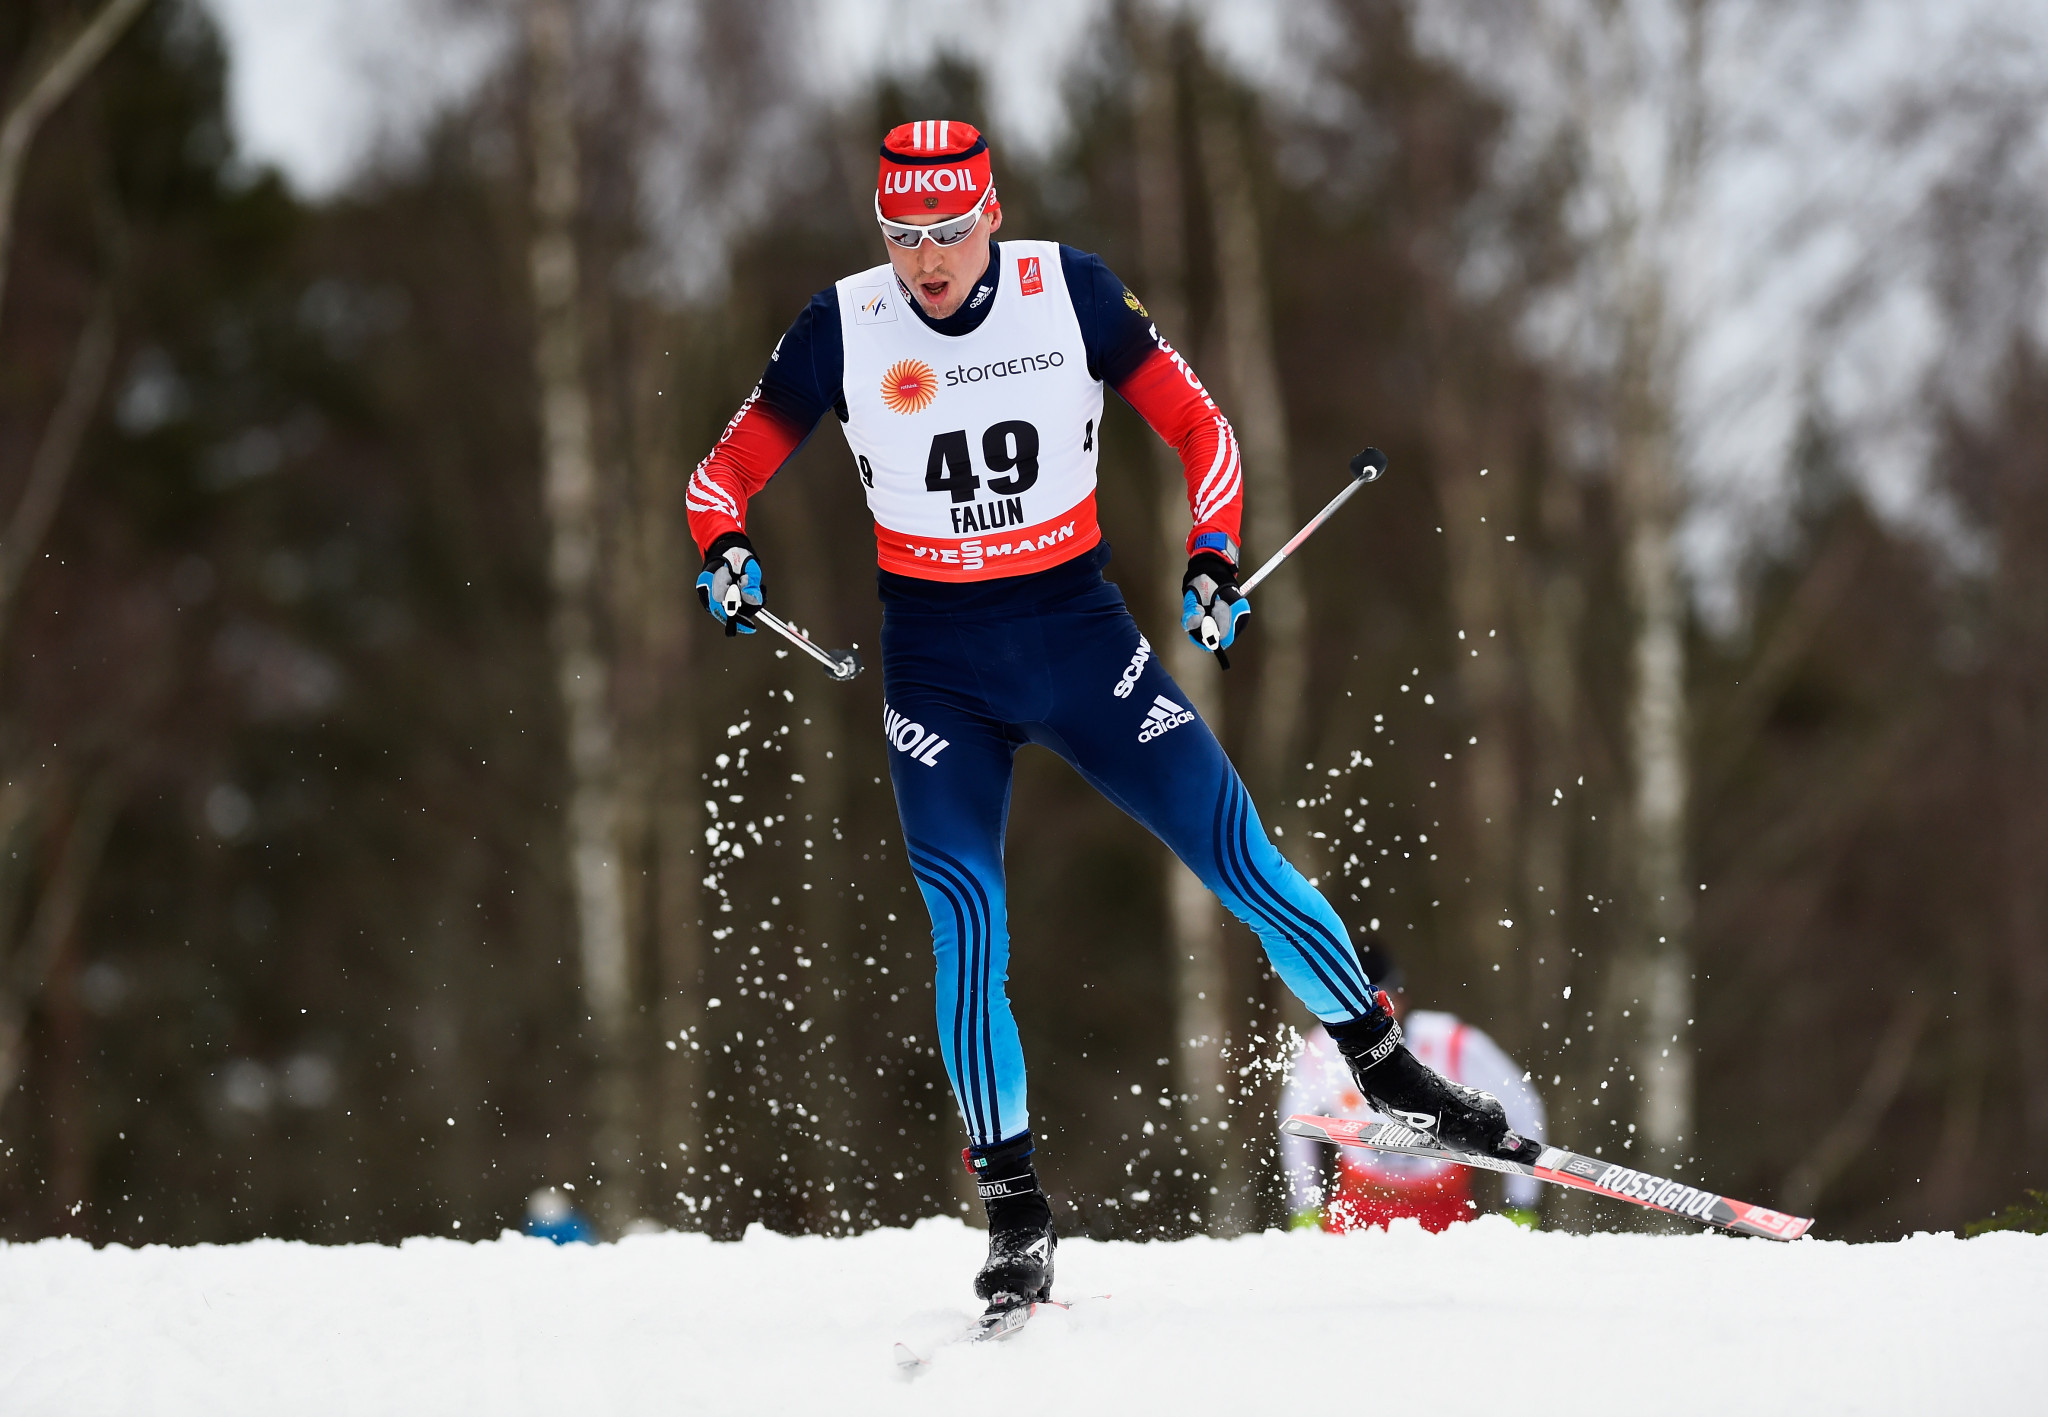 The reasoned decision against Russian cross-country skier Alexander Legkov, published by the IOC Disciplinary Commission today, was based on the